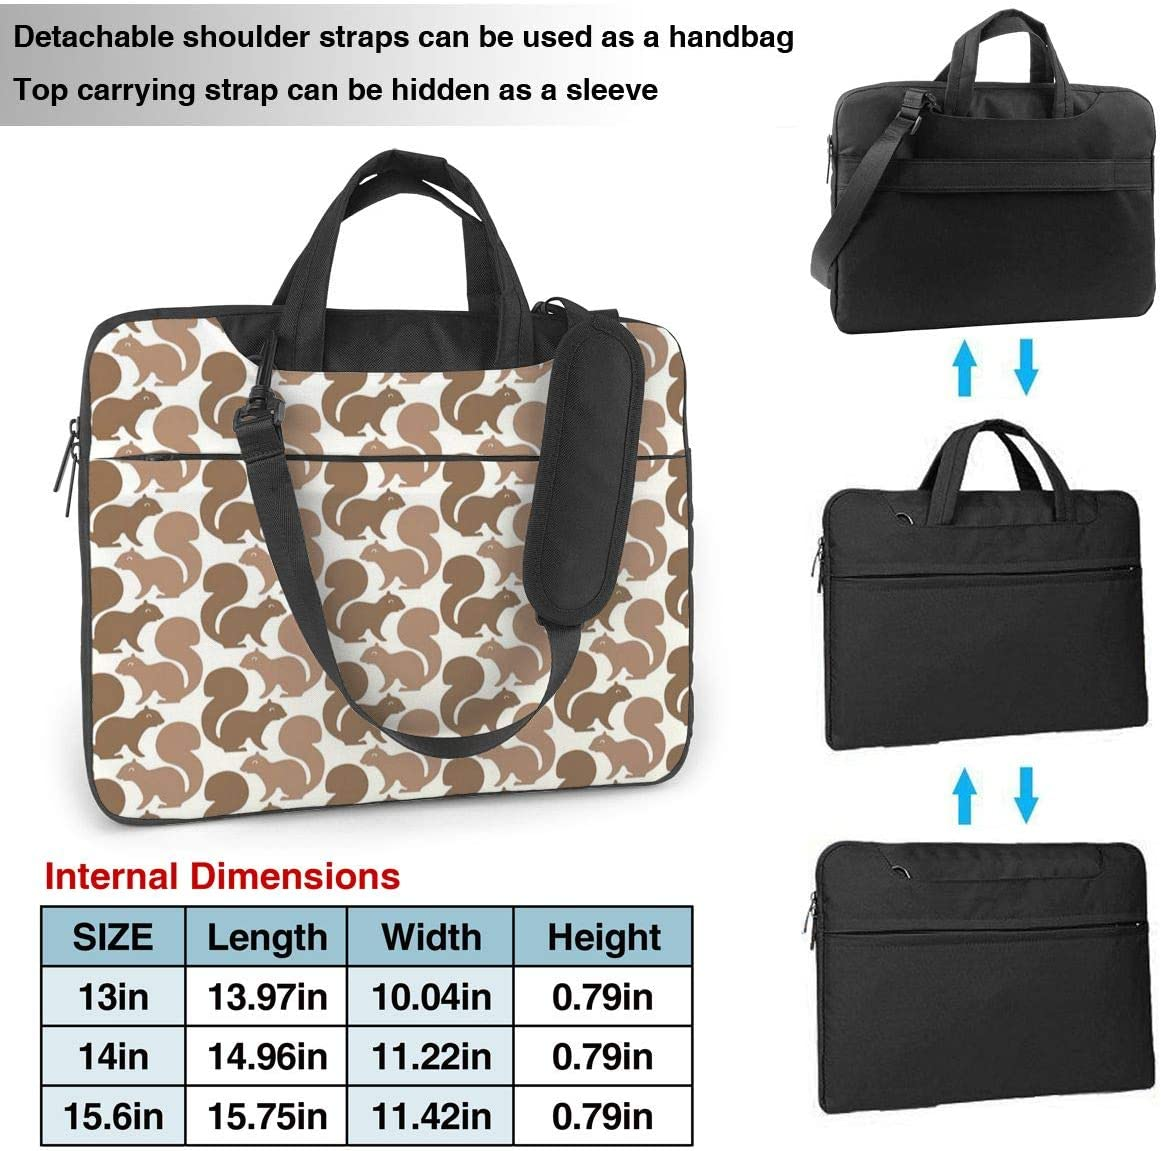 Notebook Squirrel Print Computer Sleeve Cover with Handle Laptop Shoulder Bag Carrying Laptop Case 13 Inch Business Briefcase Protective Bag for Ultrabook Asus MacBook Samsung Sony